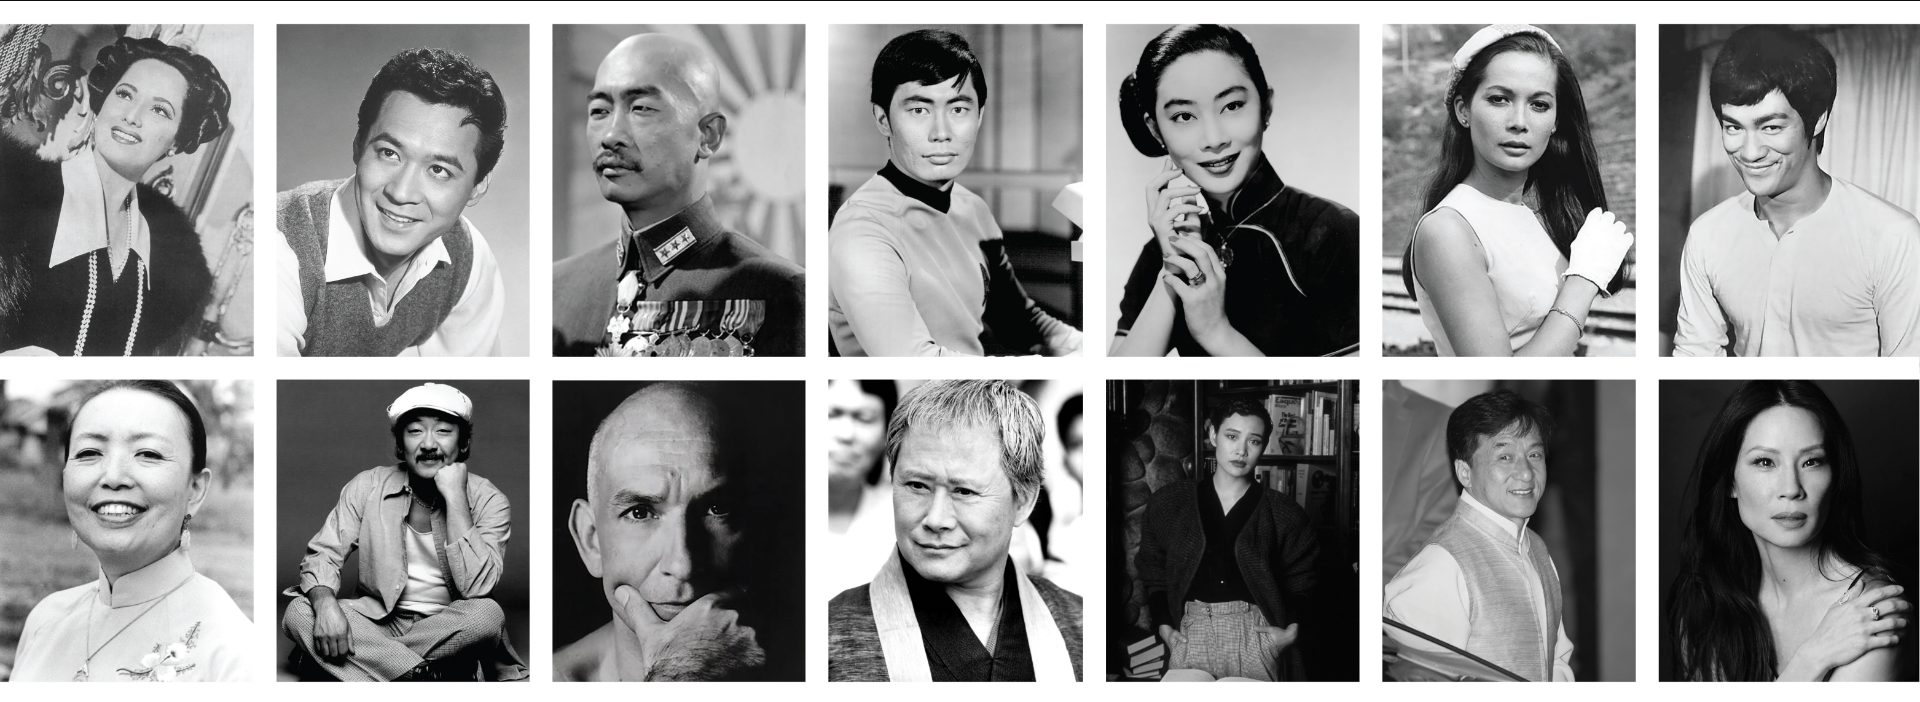 charactermedia.com: Legends: Take A Look Back At Asian American Hollywood History